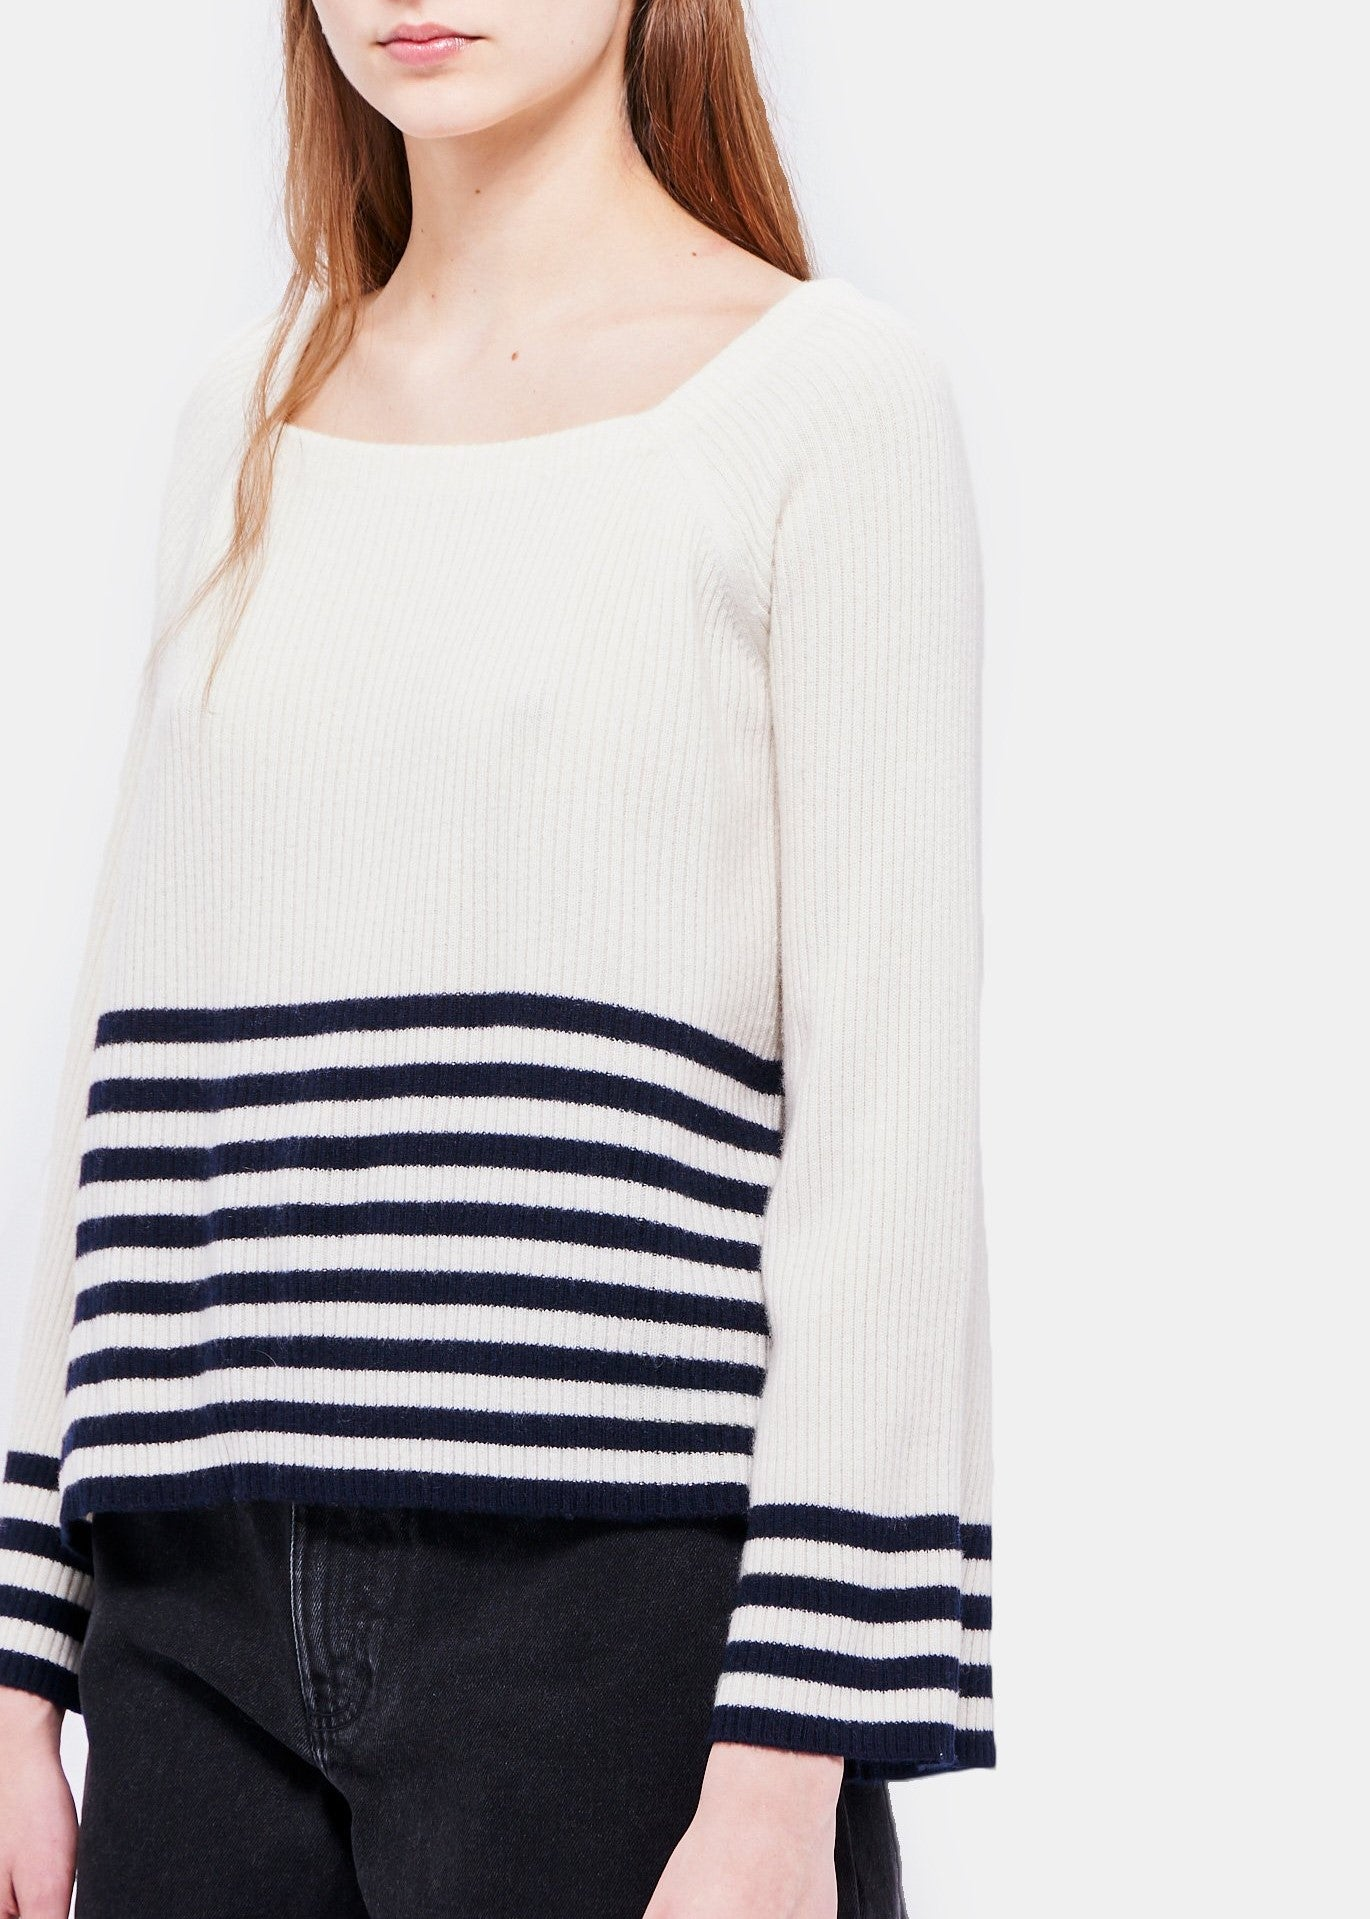 Demylee Calvin sweater in white navy